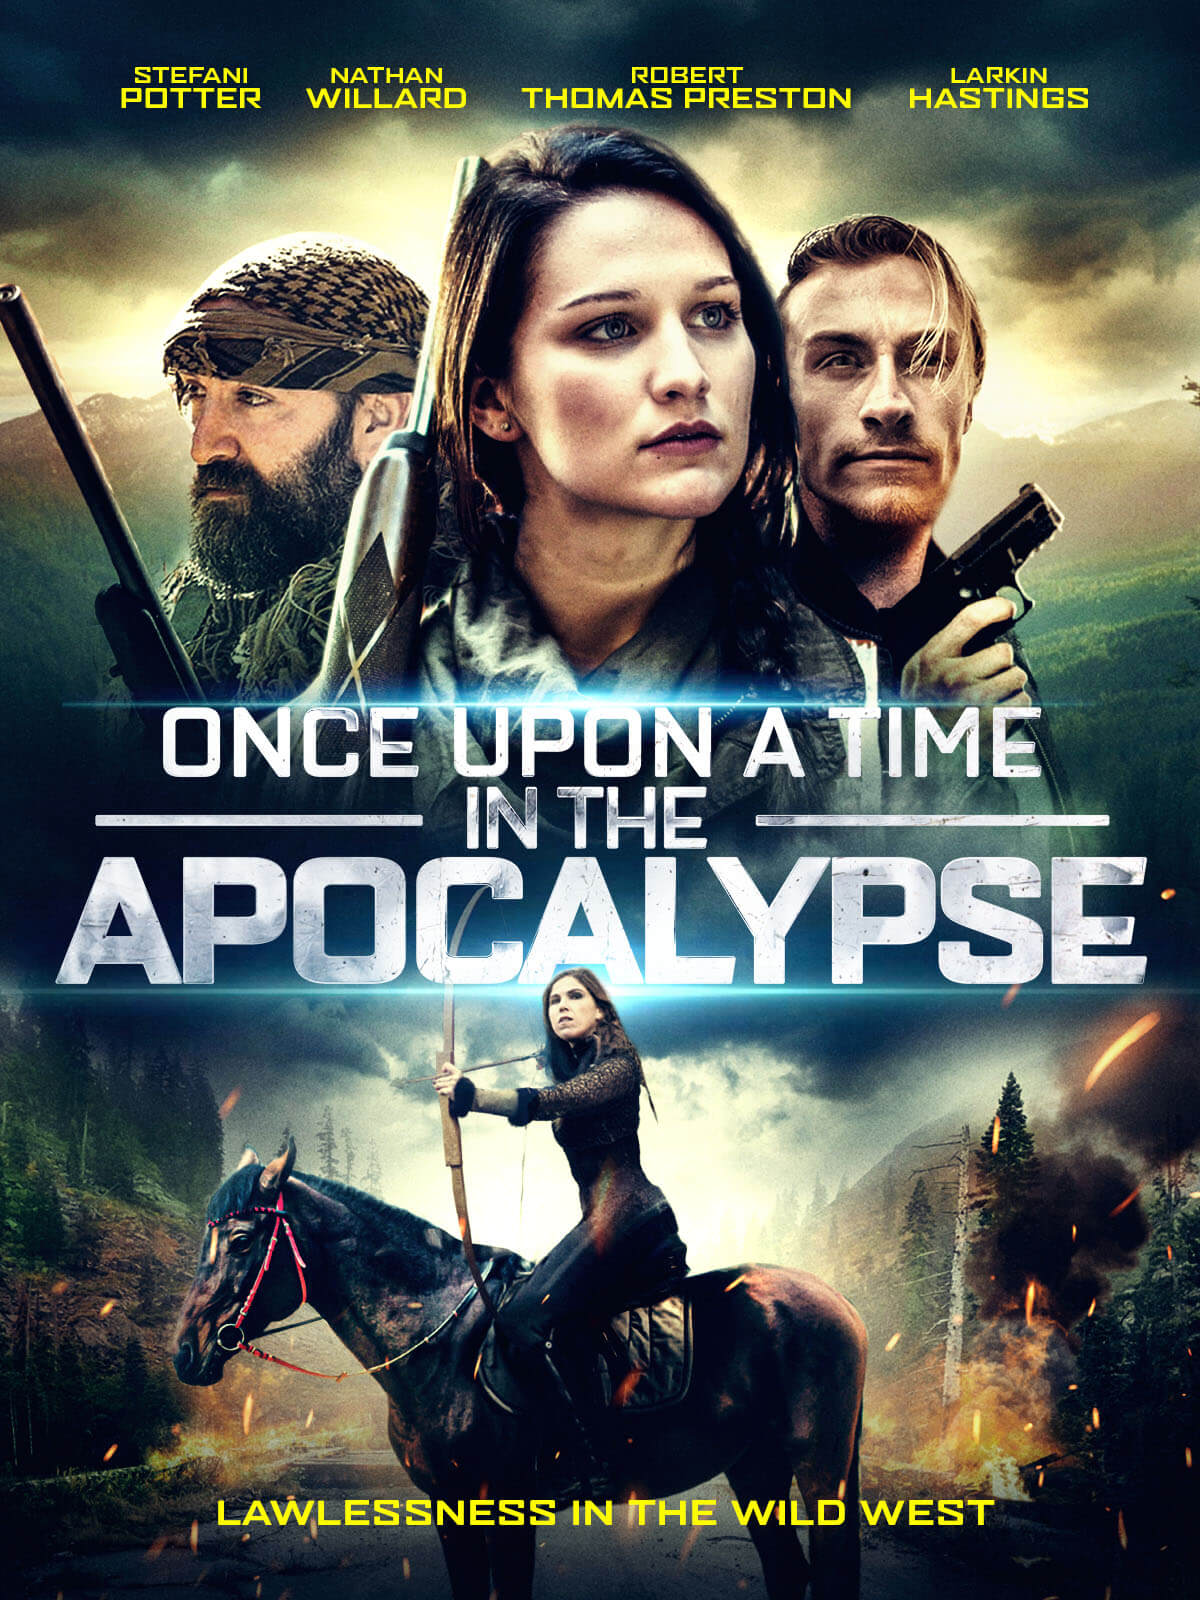 Once Upon a Time in the Apocalypse 1200x1600 1 ONCE UPON A TIME IN THE APOCALYPSE